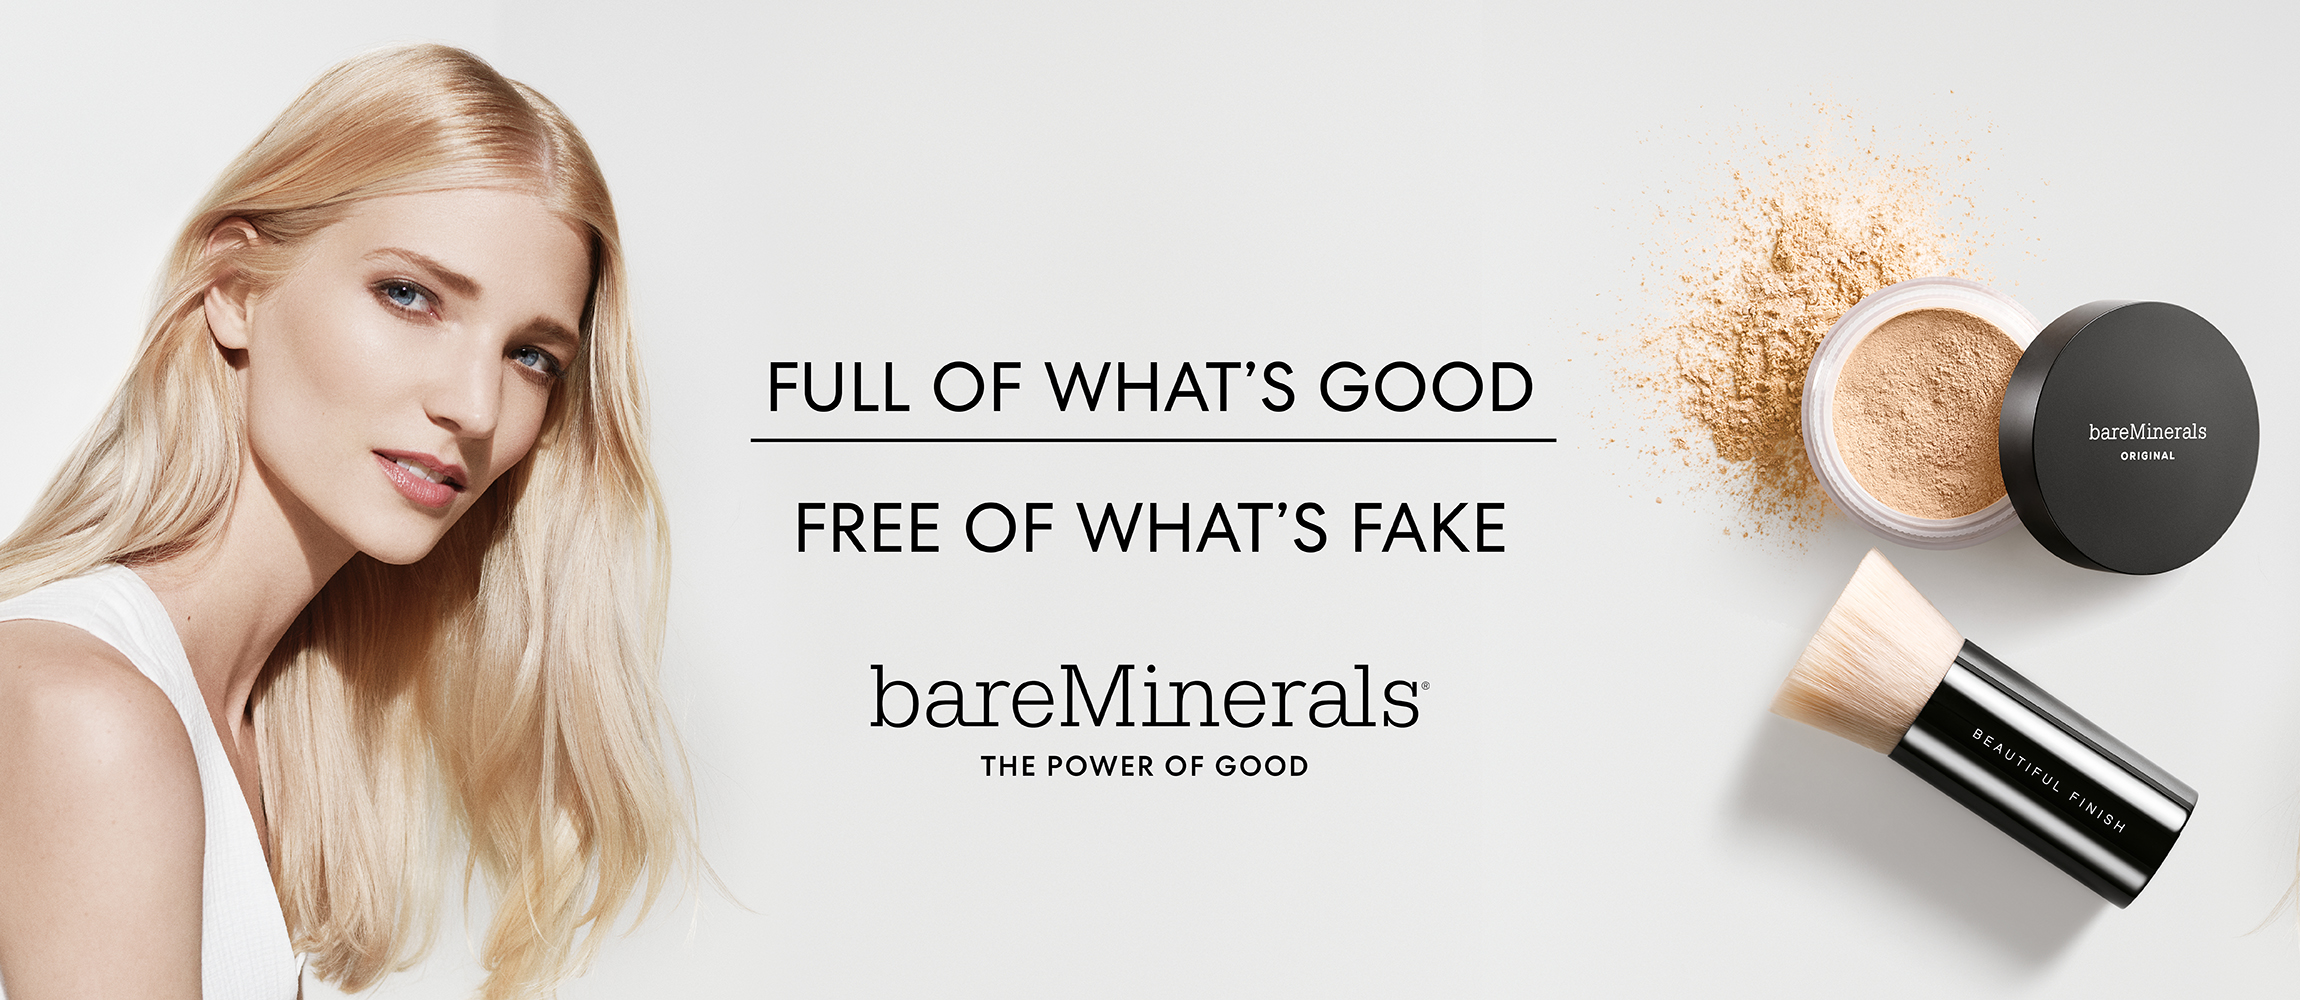 bareMinerals, makeup